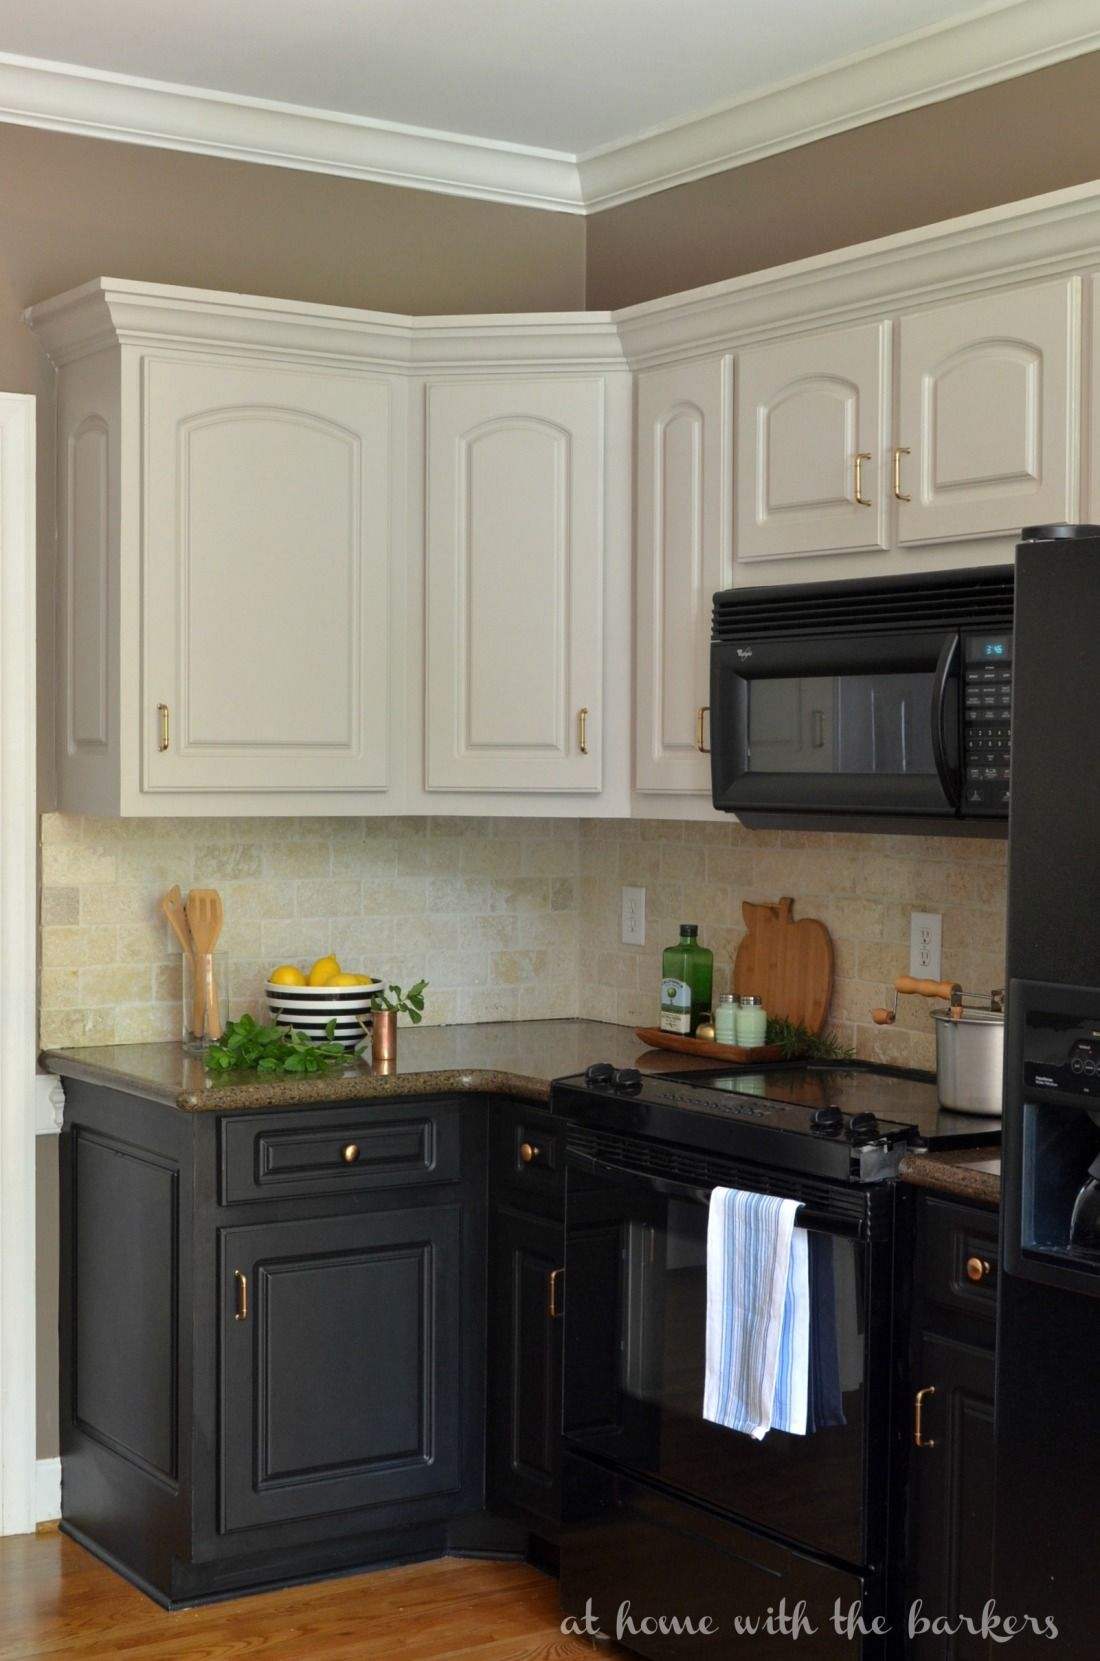 How To Paint Kitchen Cabinets At Home With The Barkers New Kitchen Cabinets Kitchen Cabinets Makeover Black Kitchen Cabinets